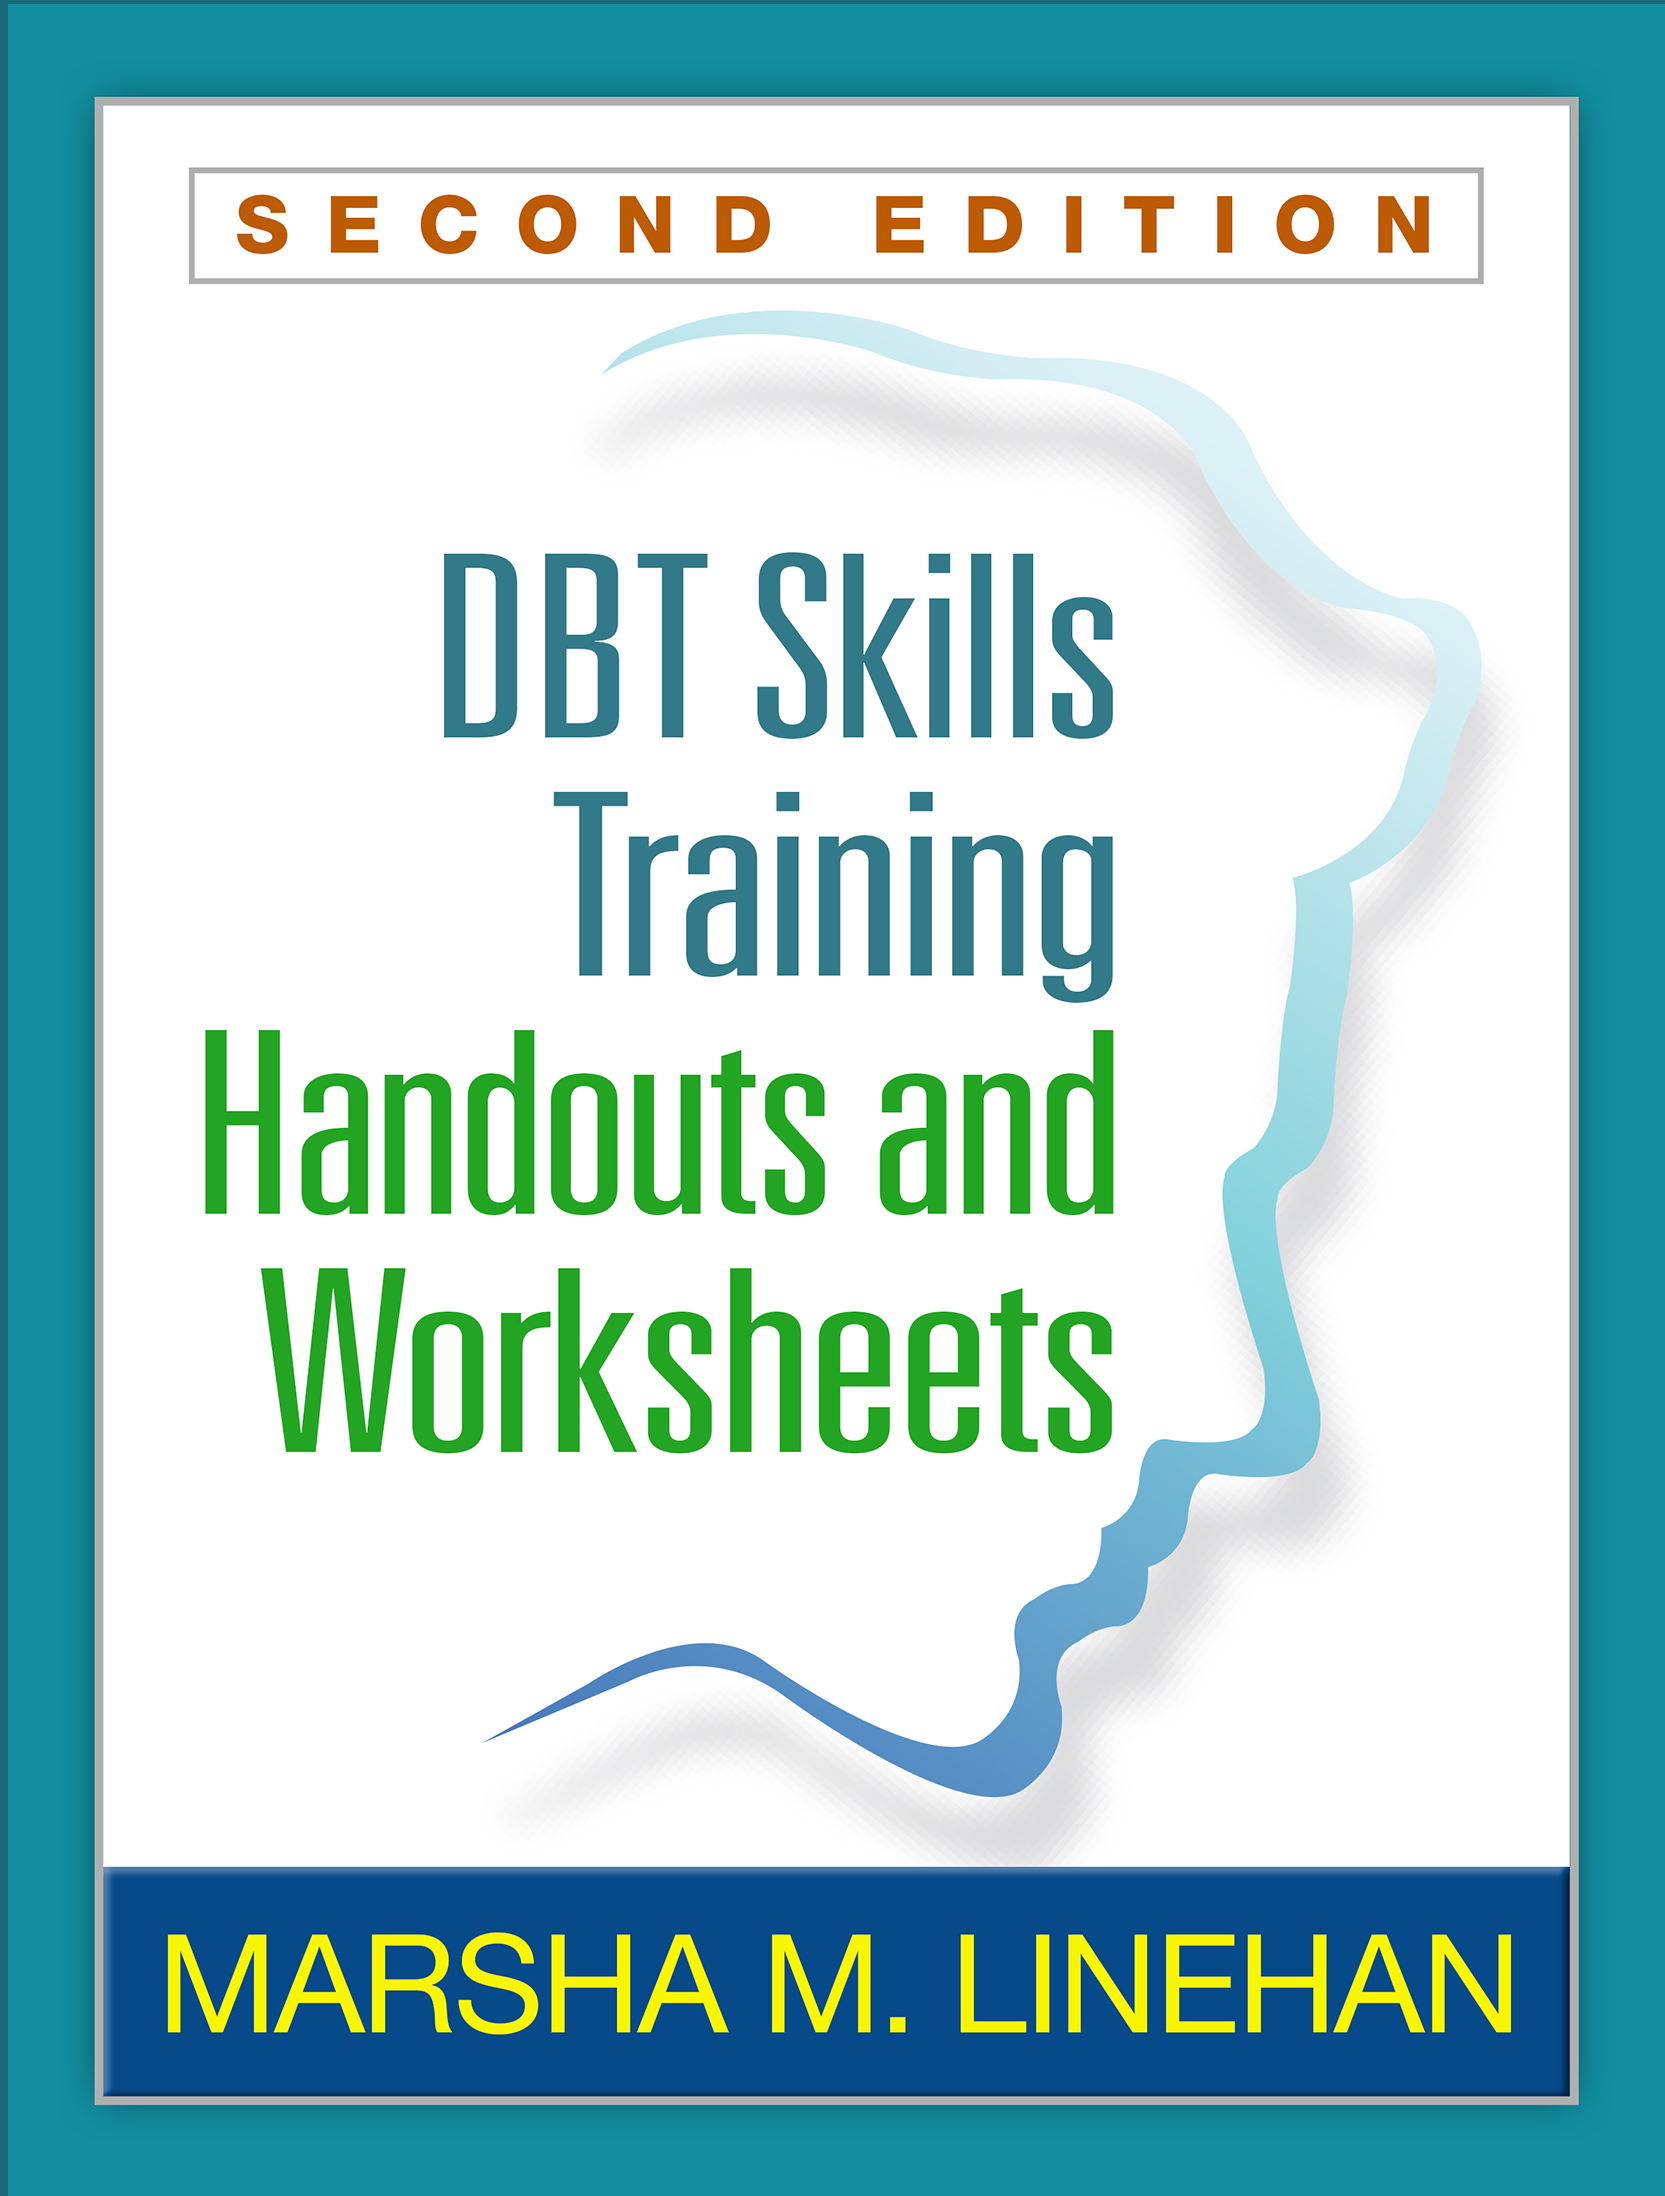 Dbt Treatment Developer Dr Marsha Linehan Releases New